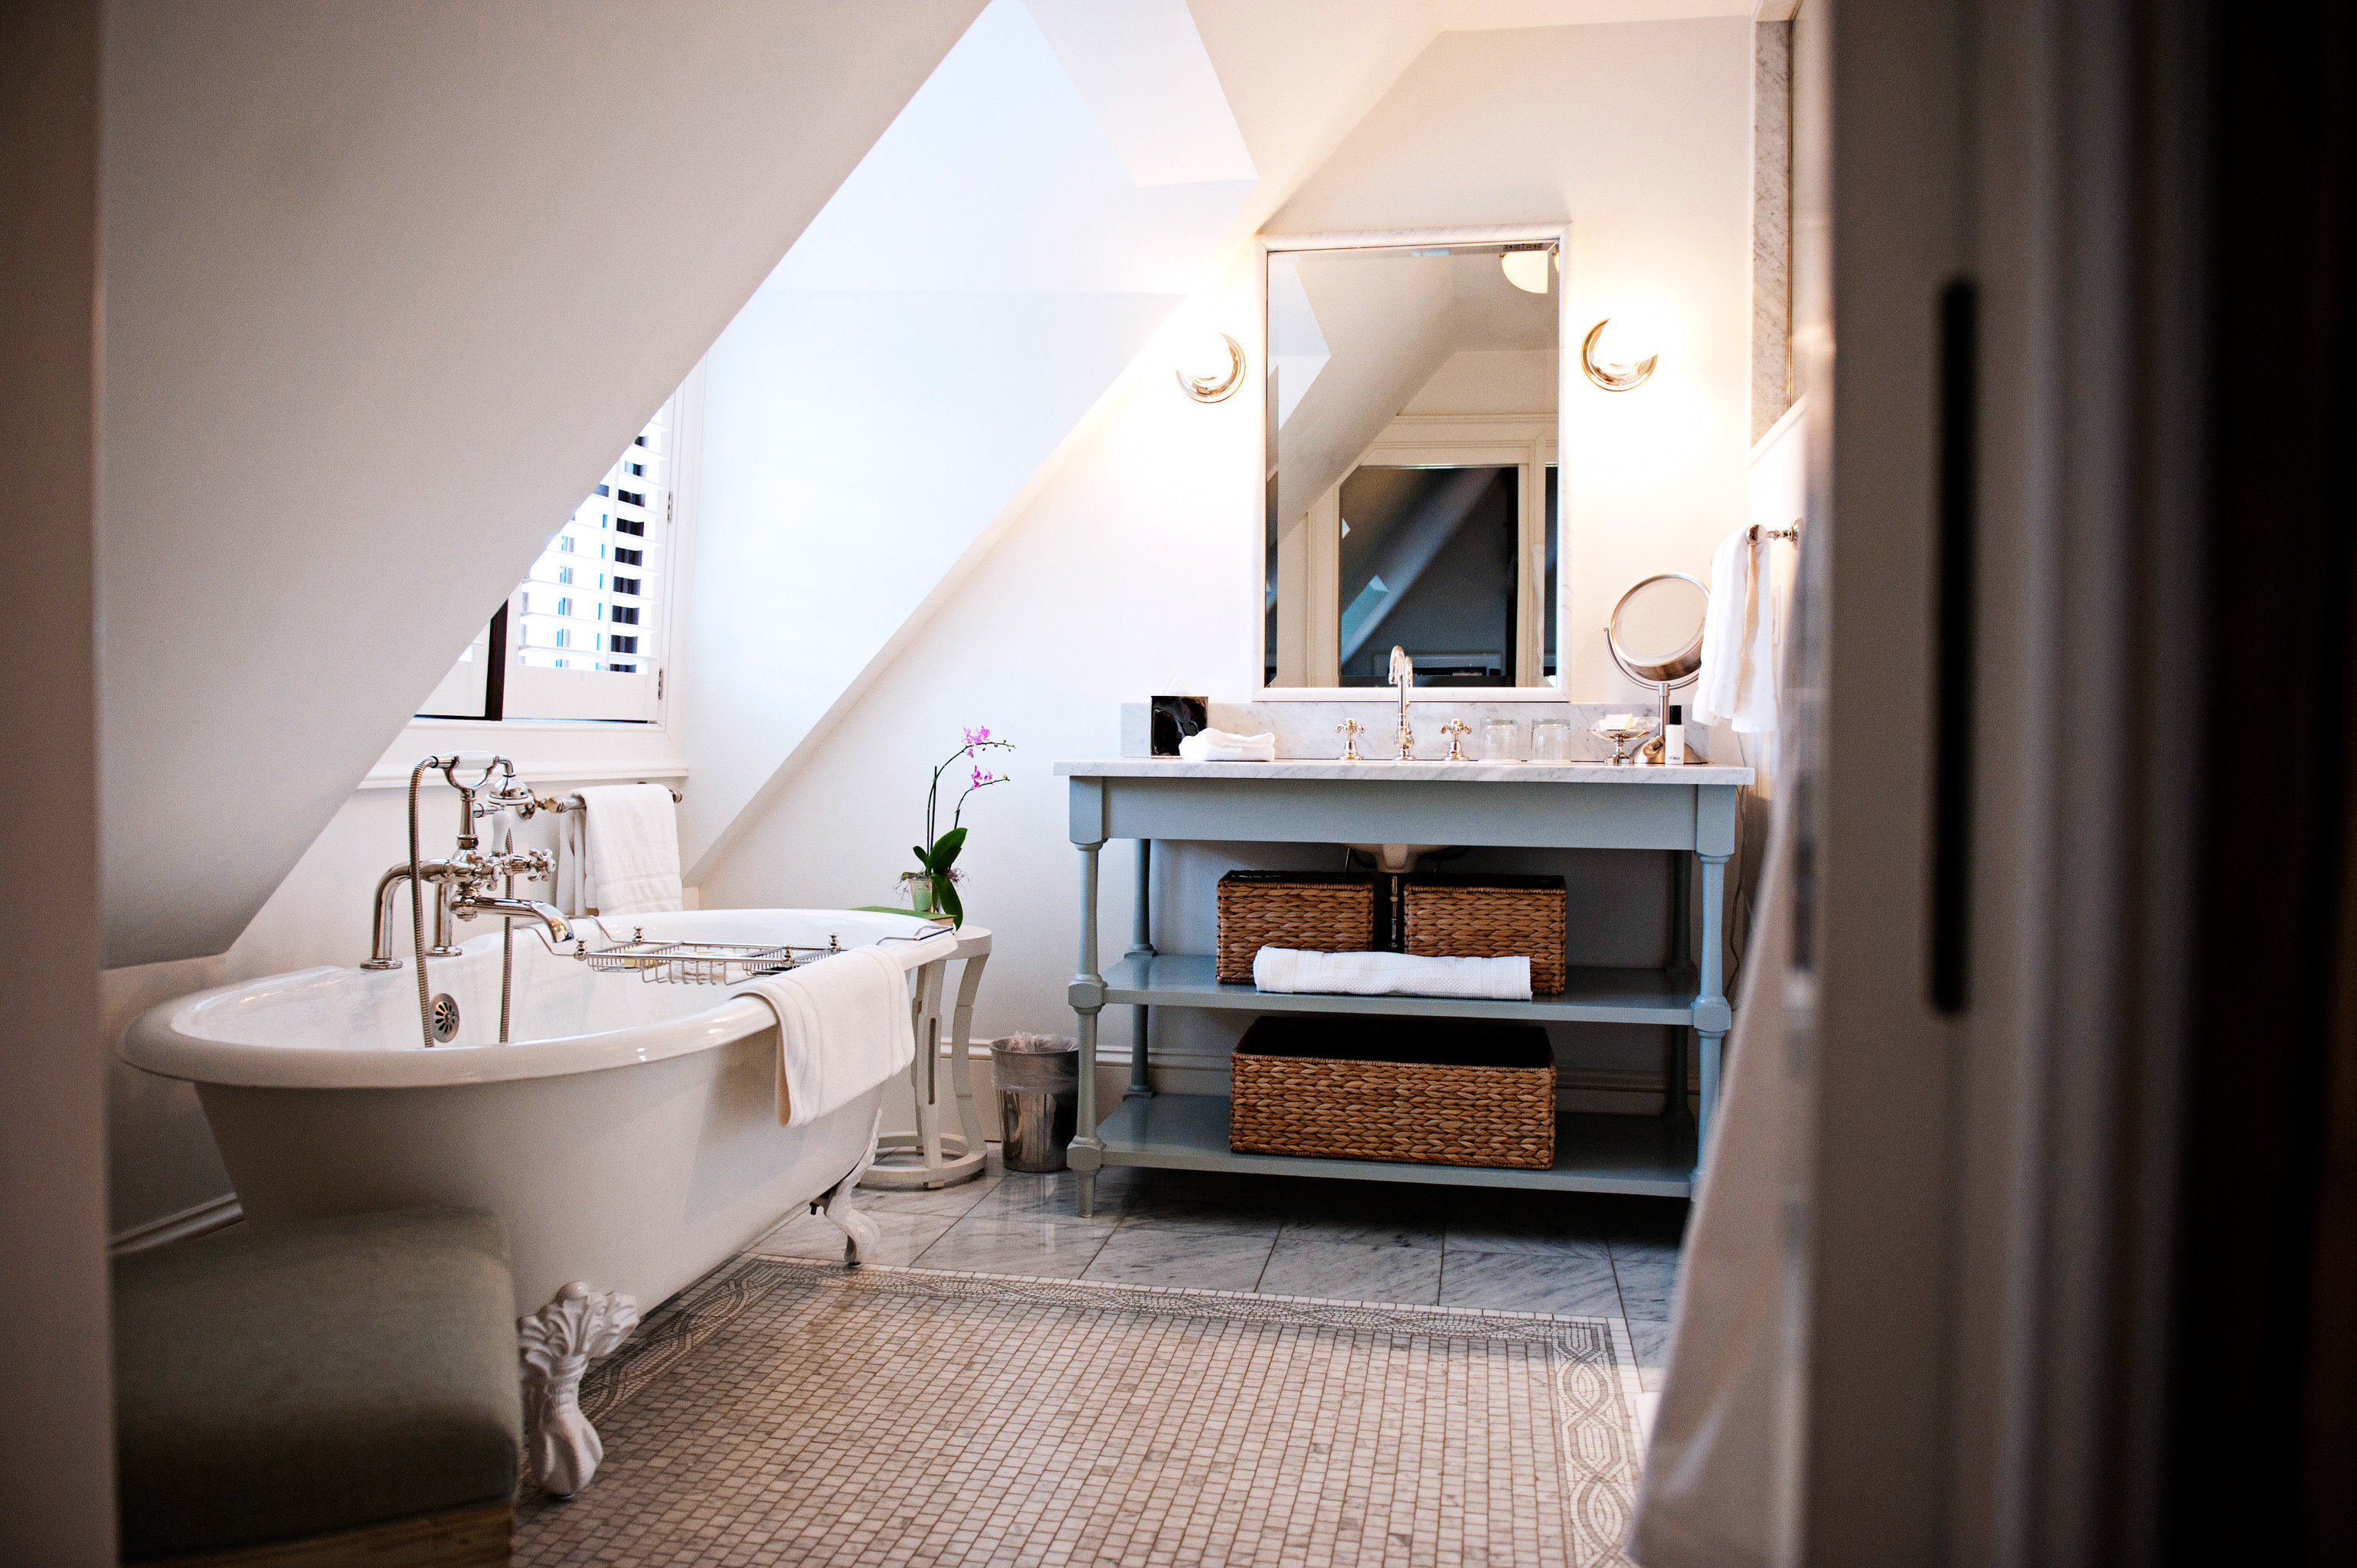 Bath Celebs Country Hotels Inn Luxury Modern wall indoor bathroom floor room property house home Suite estate sink interior design cottage Design living room apartment tub bathtub